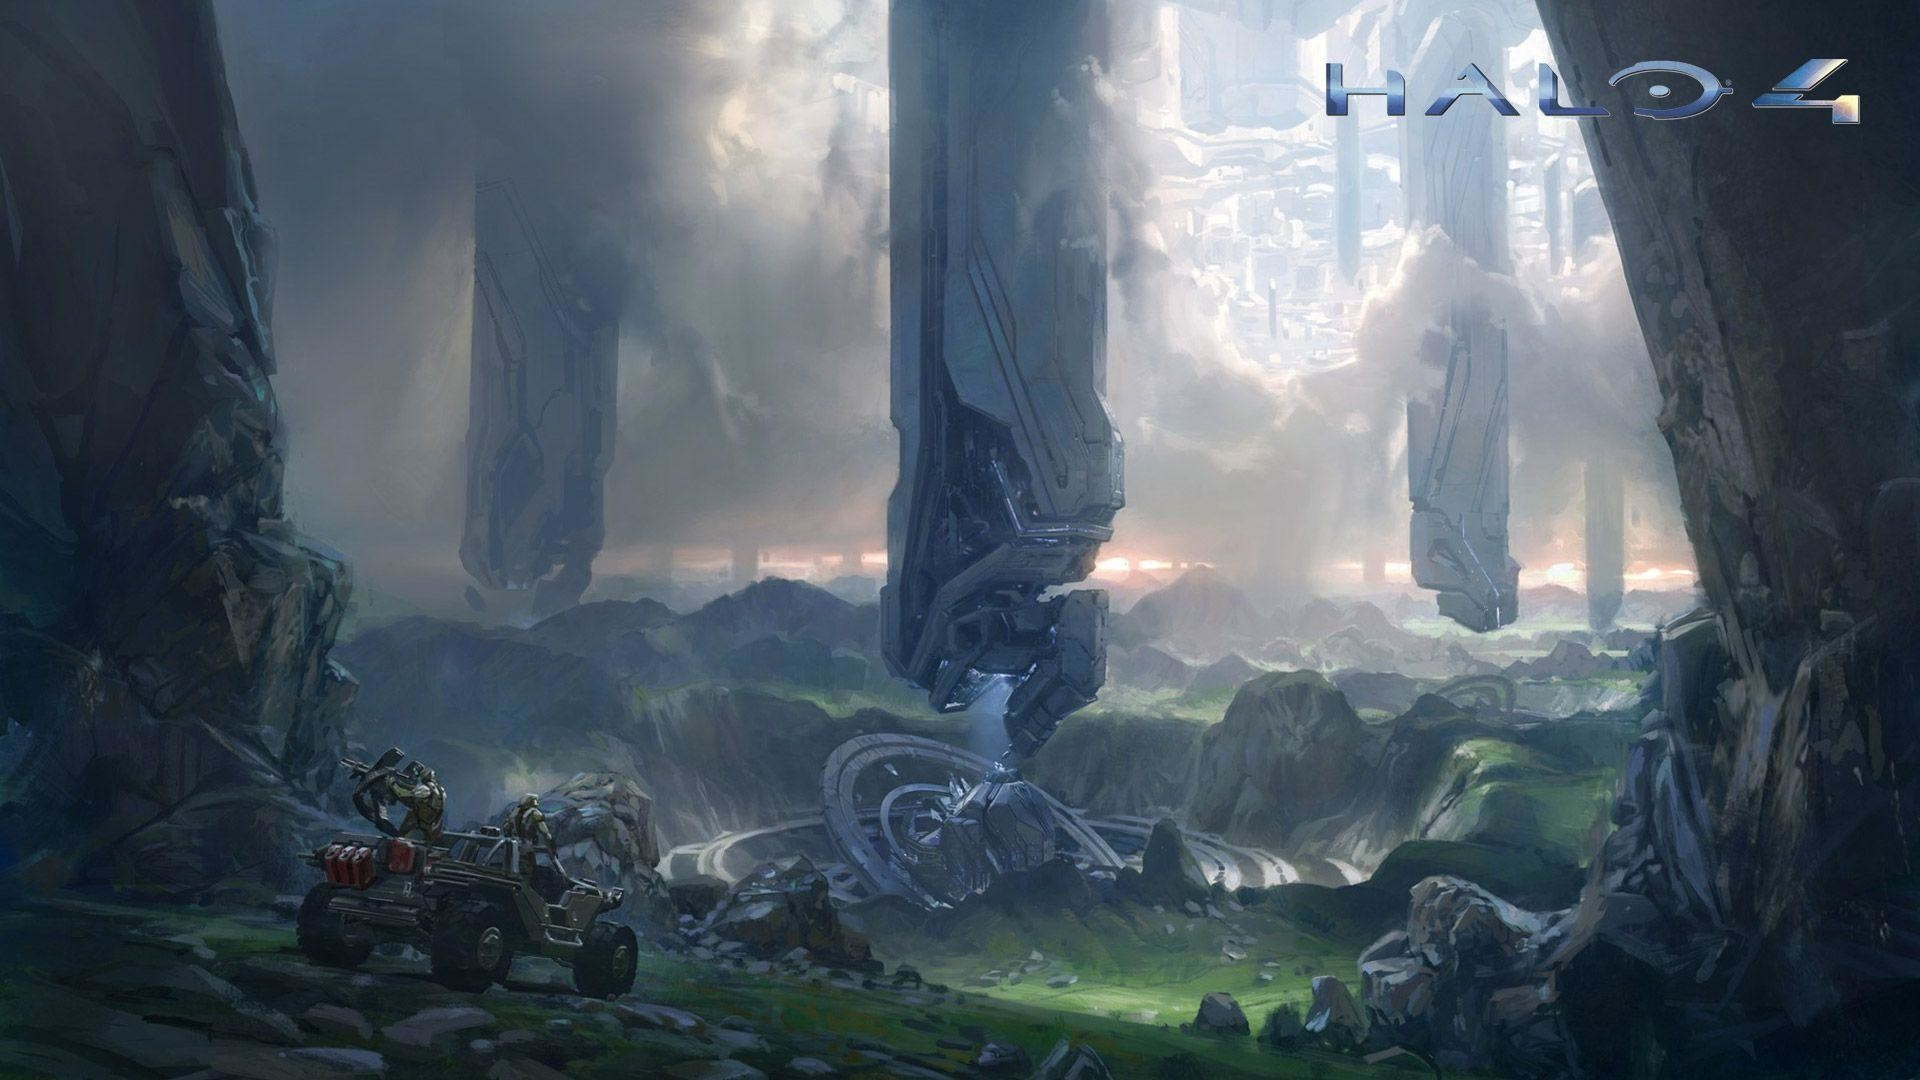 Halo 4 Game Cover Wallpaper